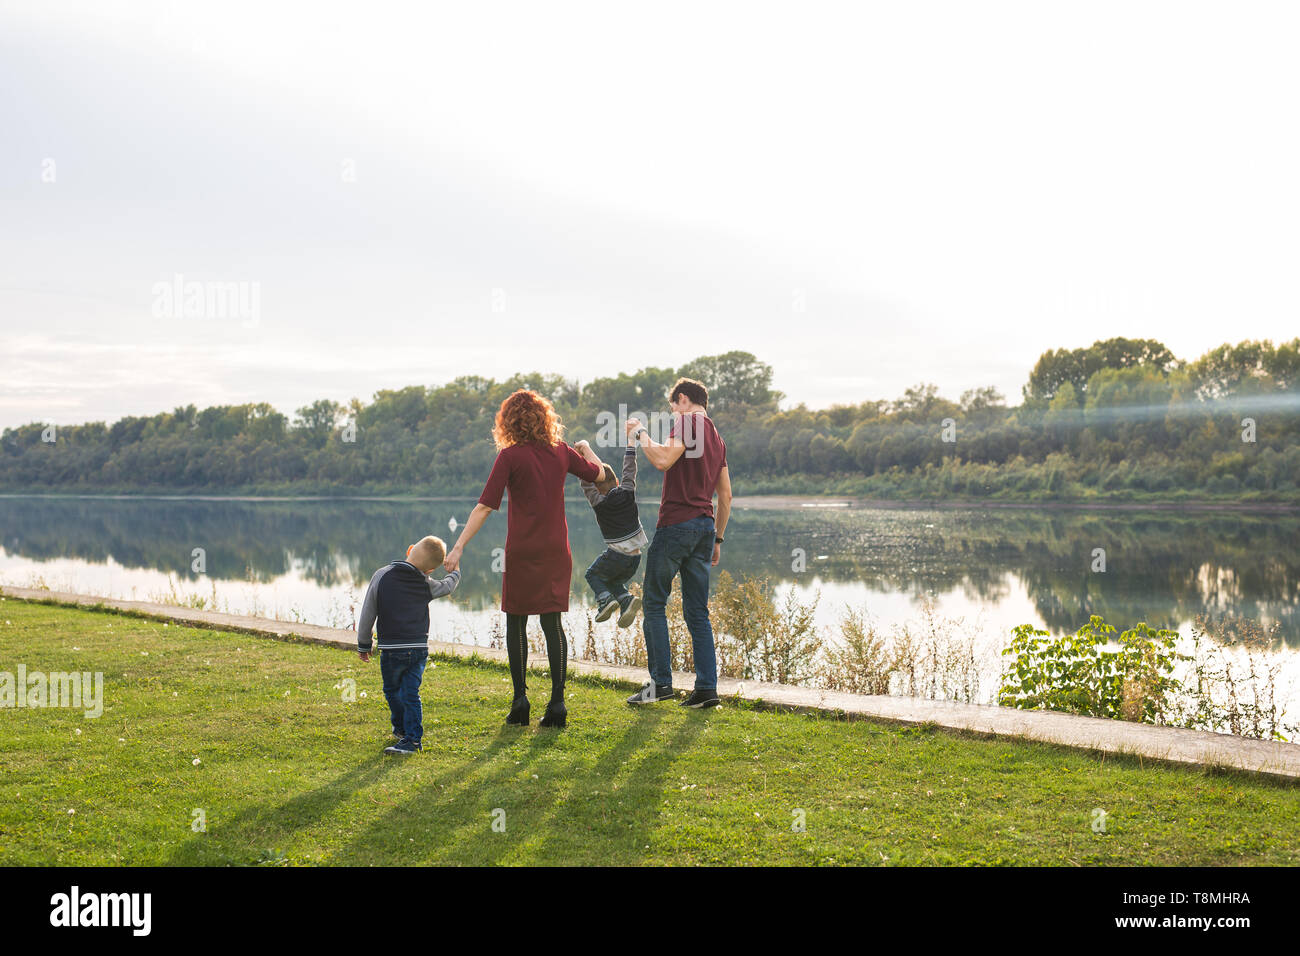 Parenthood and nature concept -Family of mother and father with two boys twins kids in a park at summer by a river at sunny day - Stock Image